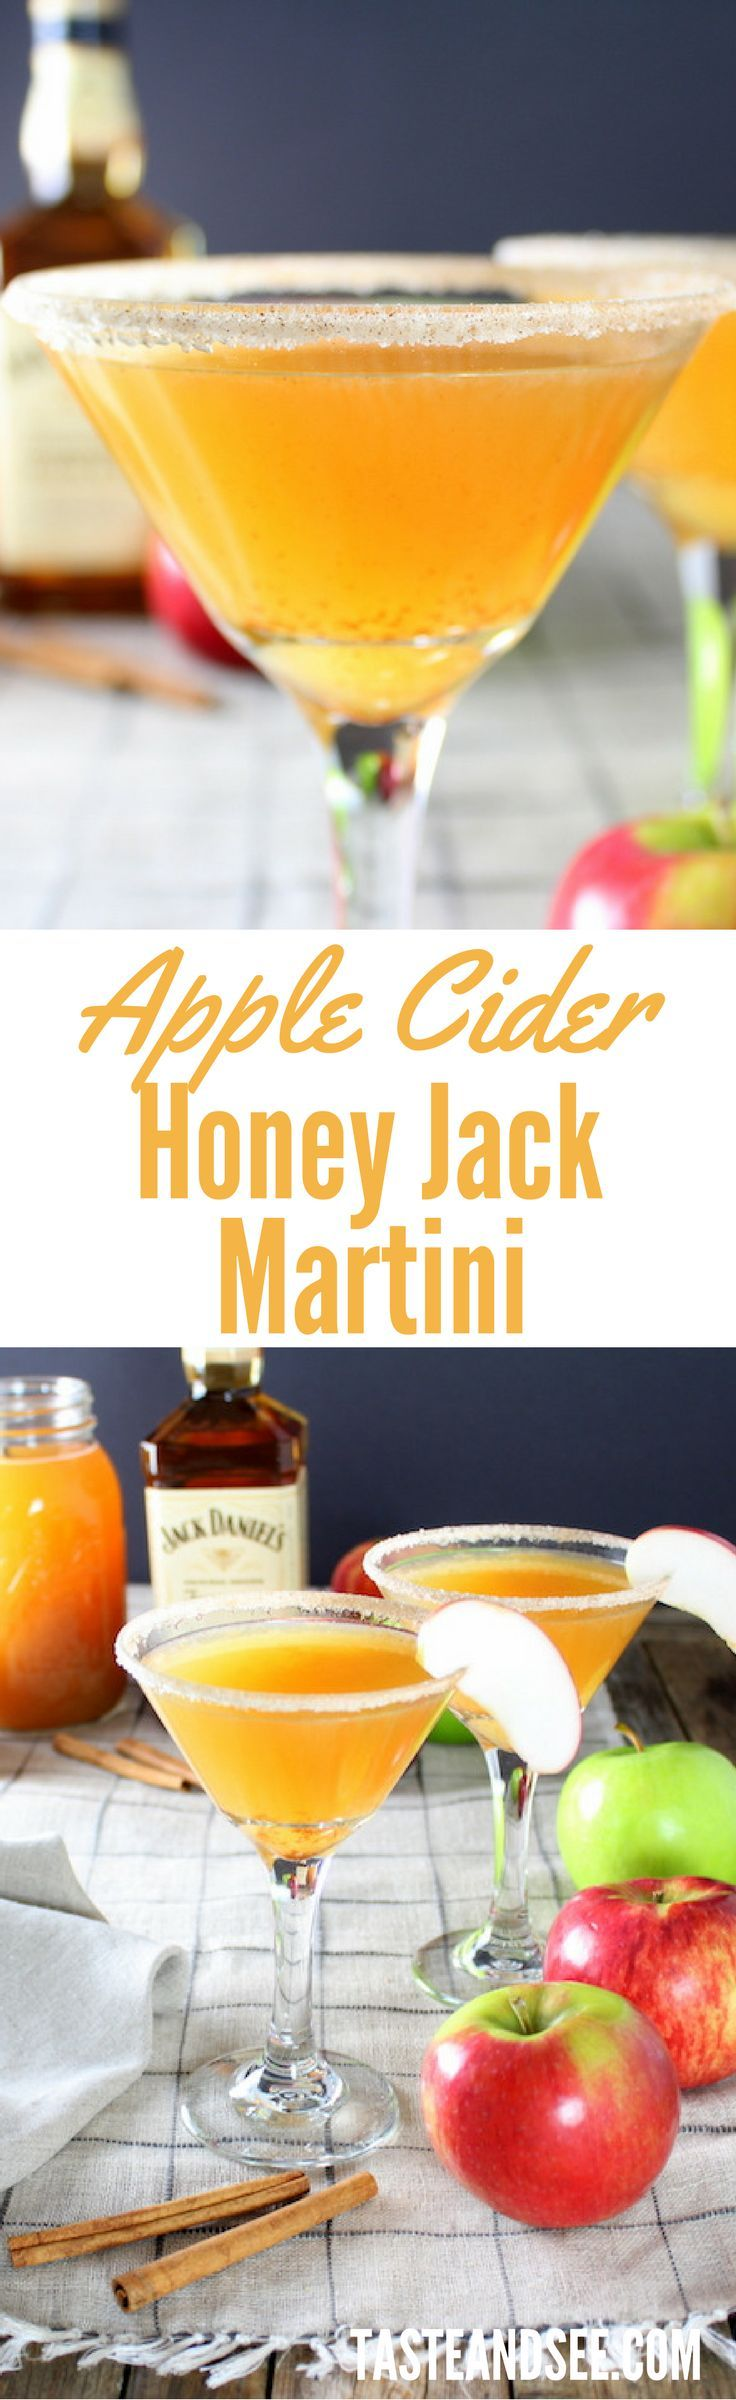 Apple Cider Honey Jack Martini – apple pie in a glass!   http://tasteandsee.com